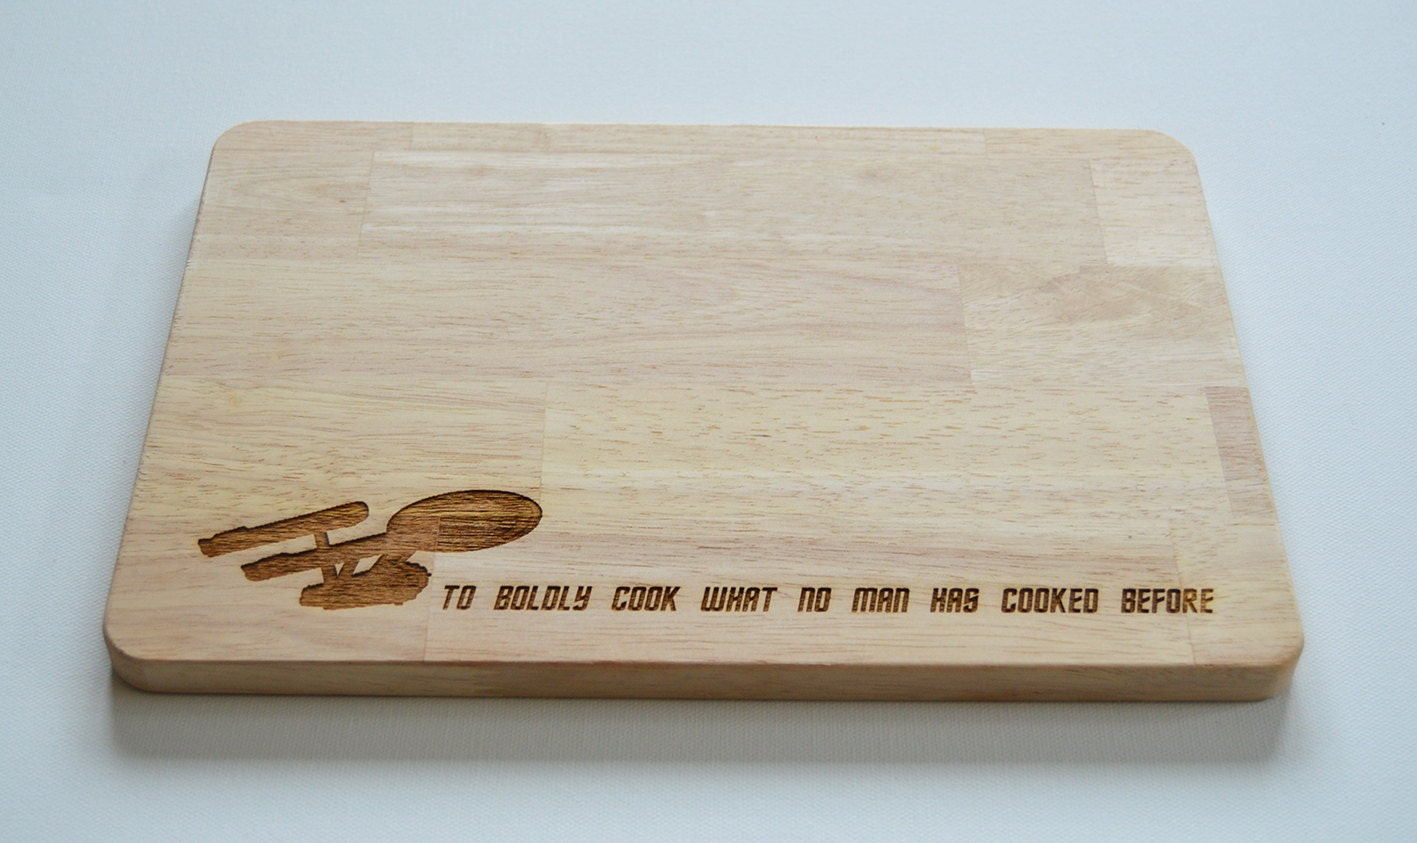 Star trek engraved wood chopping board to boldly go - Engraved wooden chopping boards ...